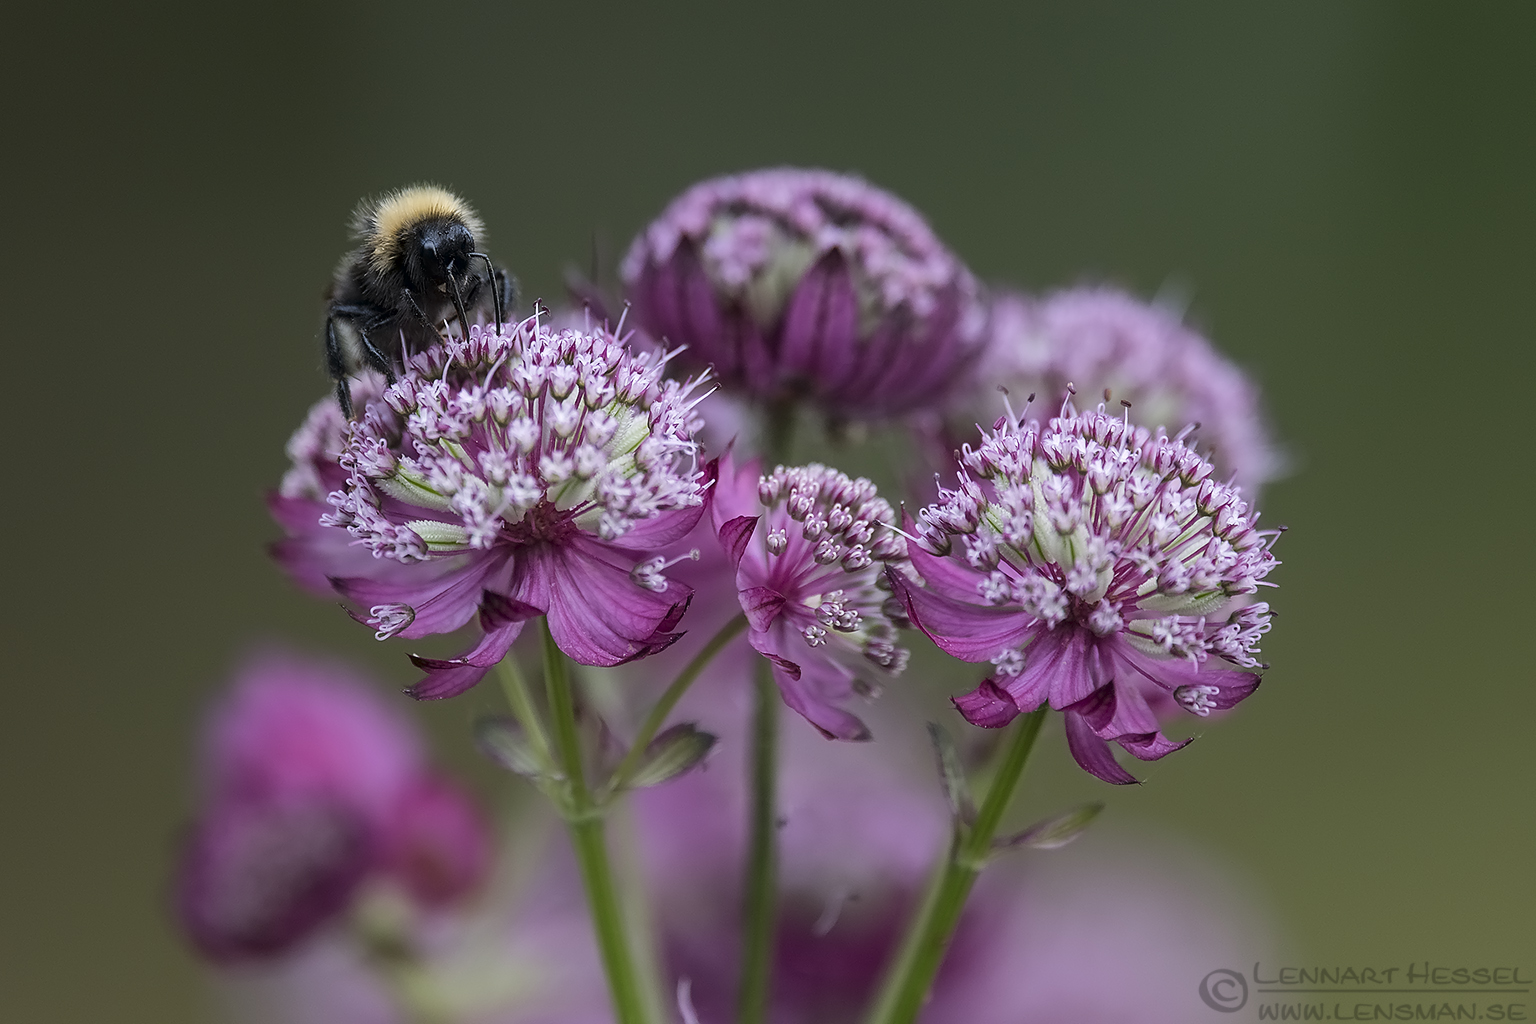 Garden Bumblebee insects